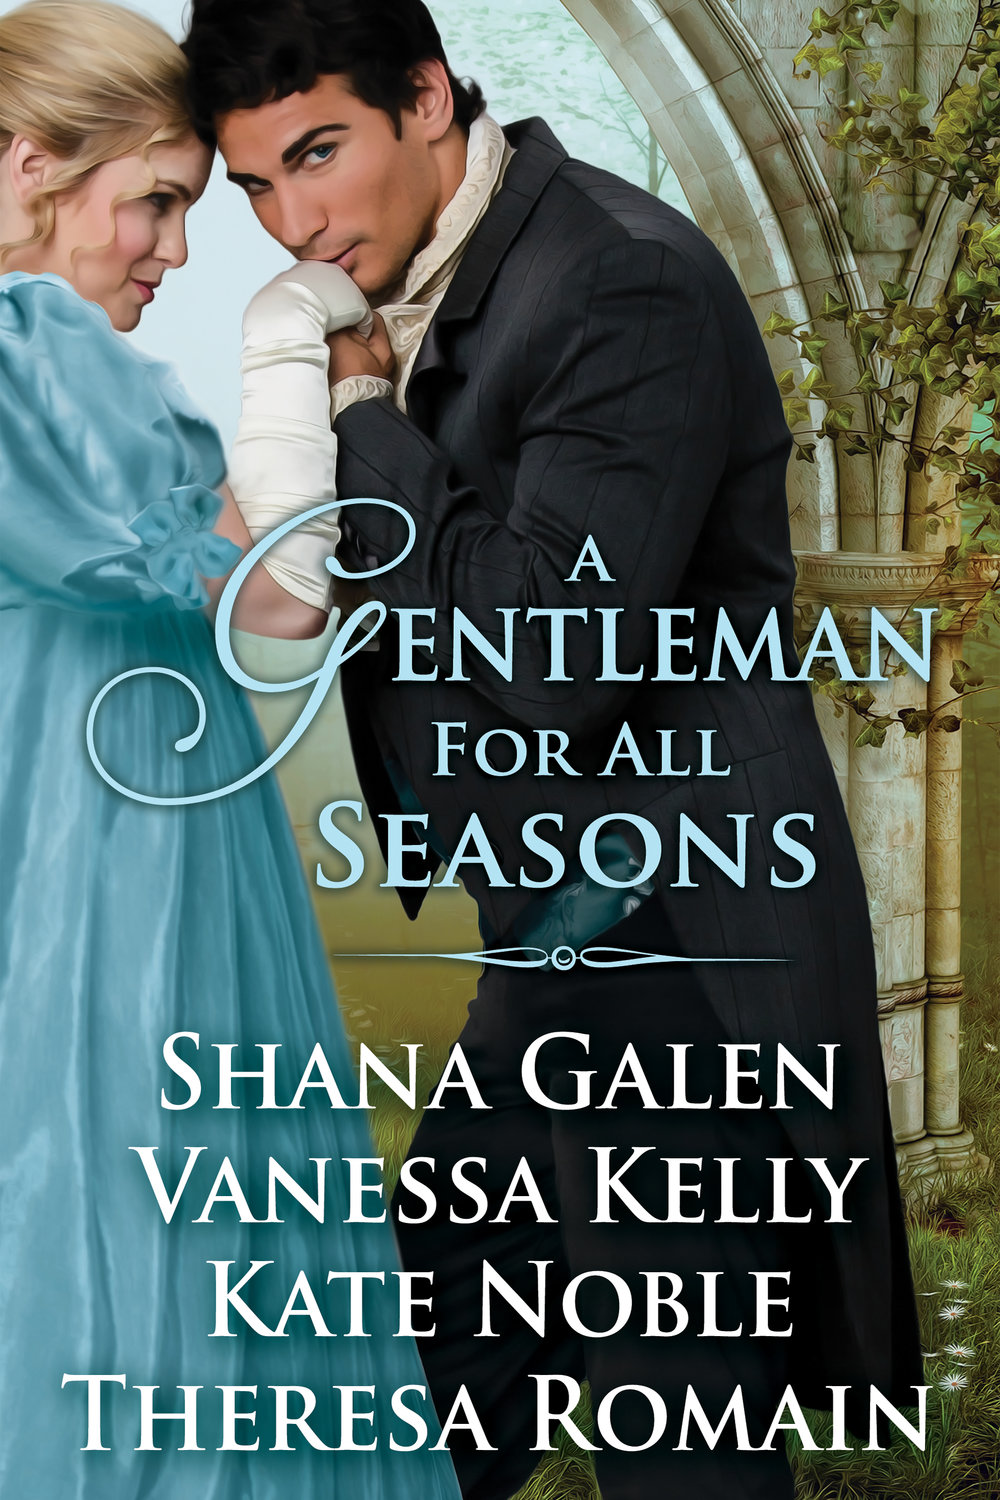 A Gentleman for All Seasons (final).jpg